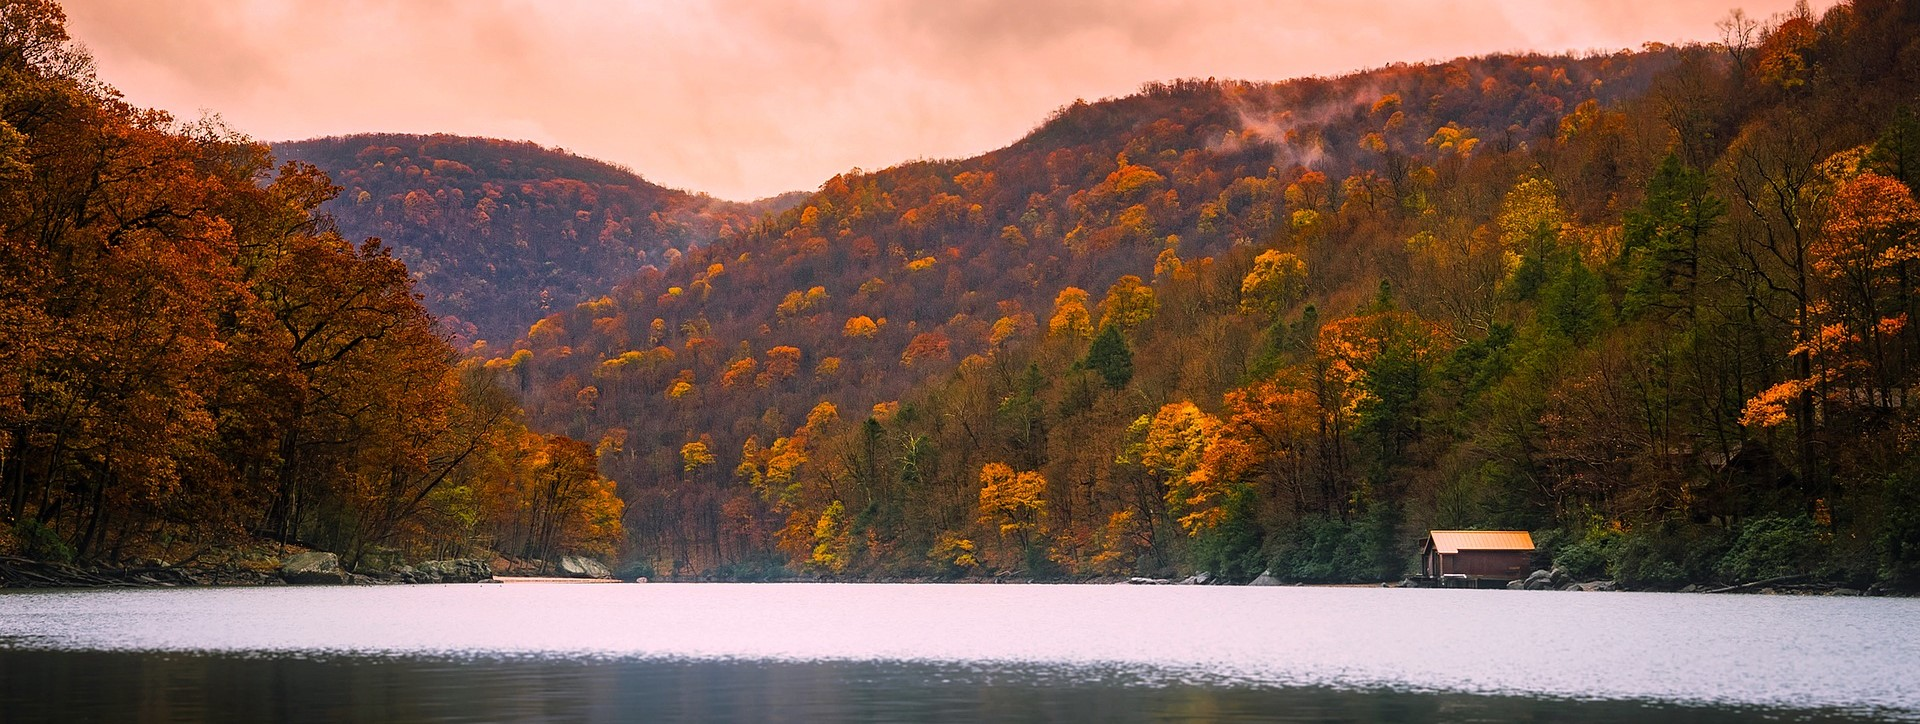 Cheat Lake, West Virginia - CarDonations4Cancer.org